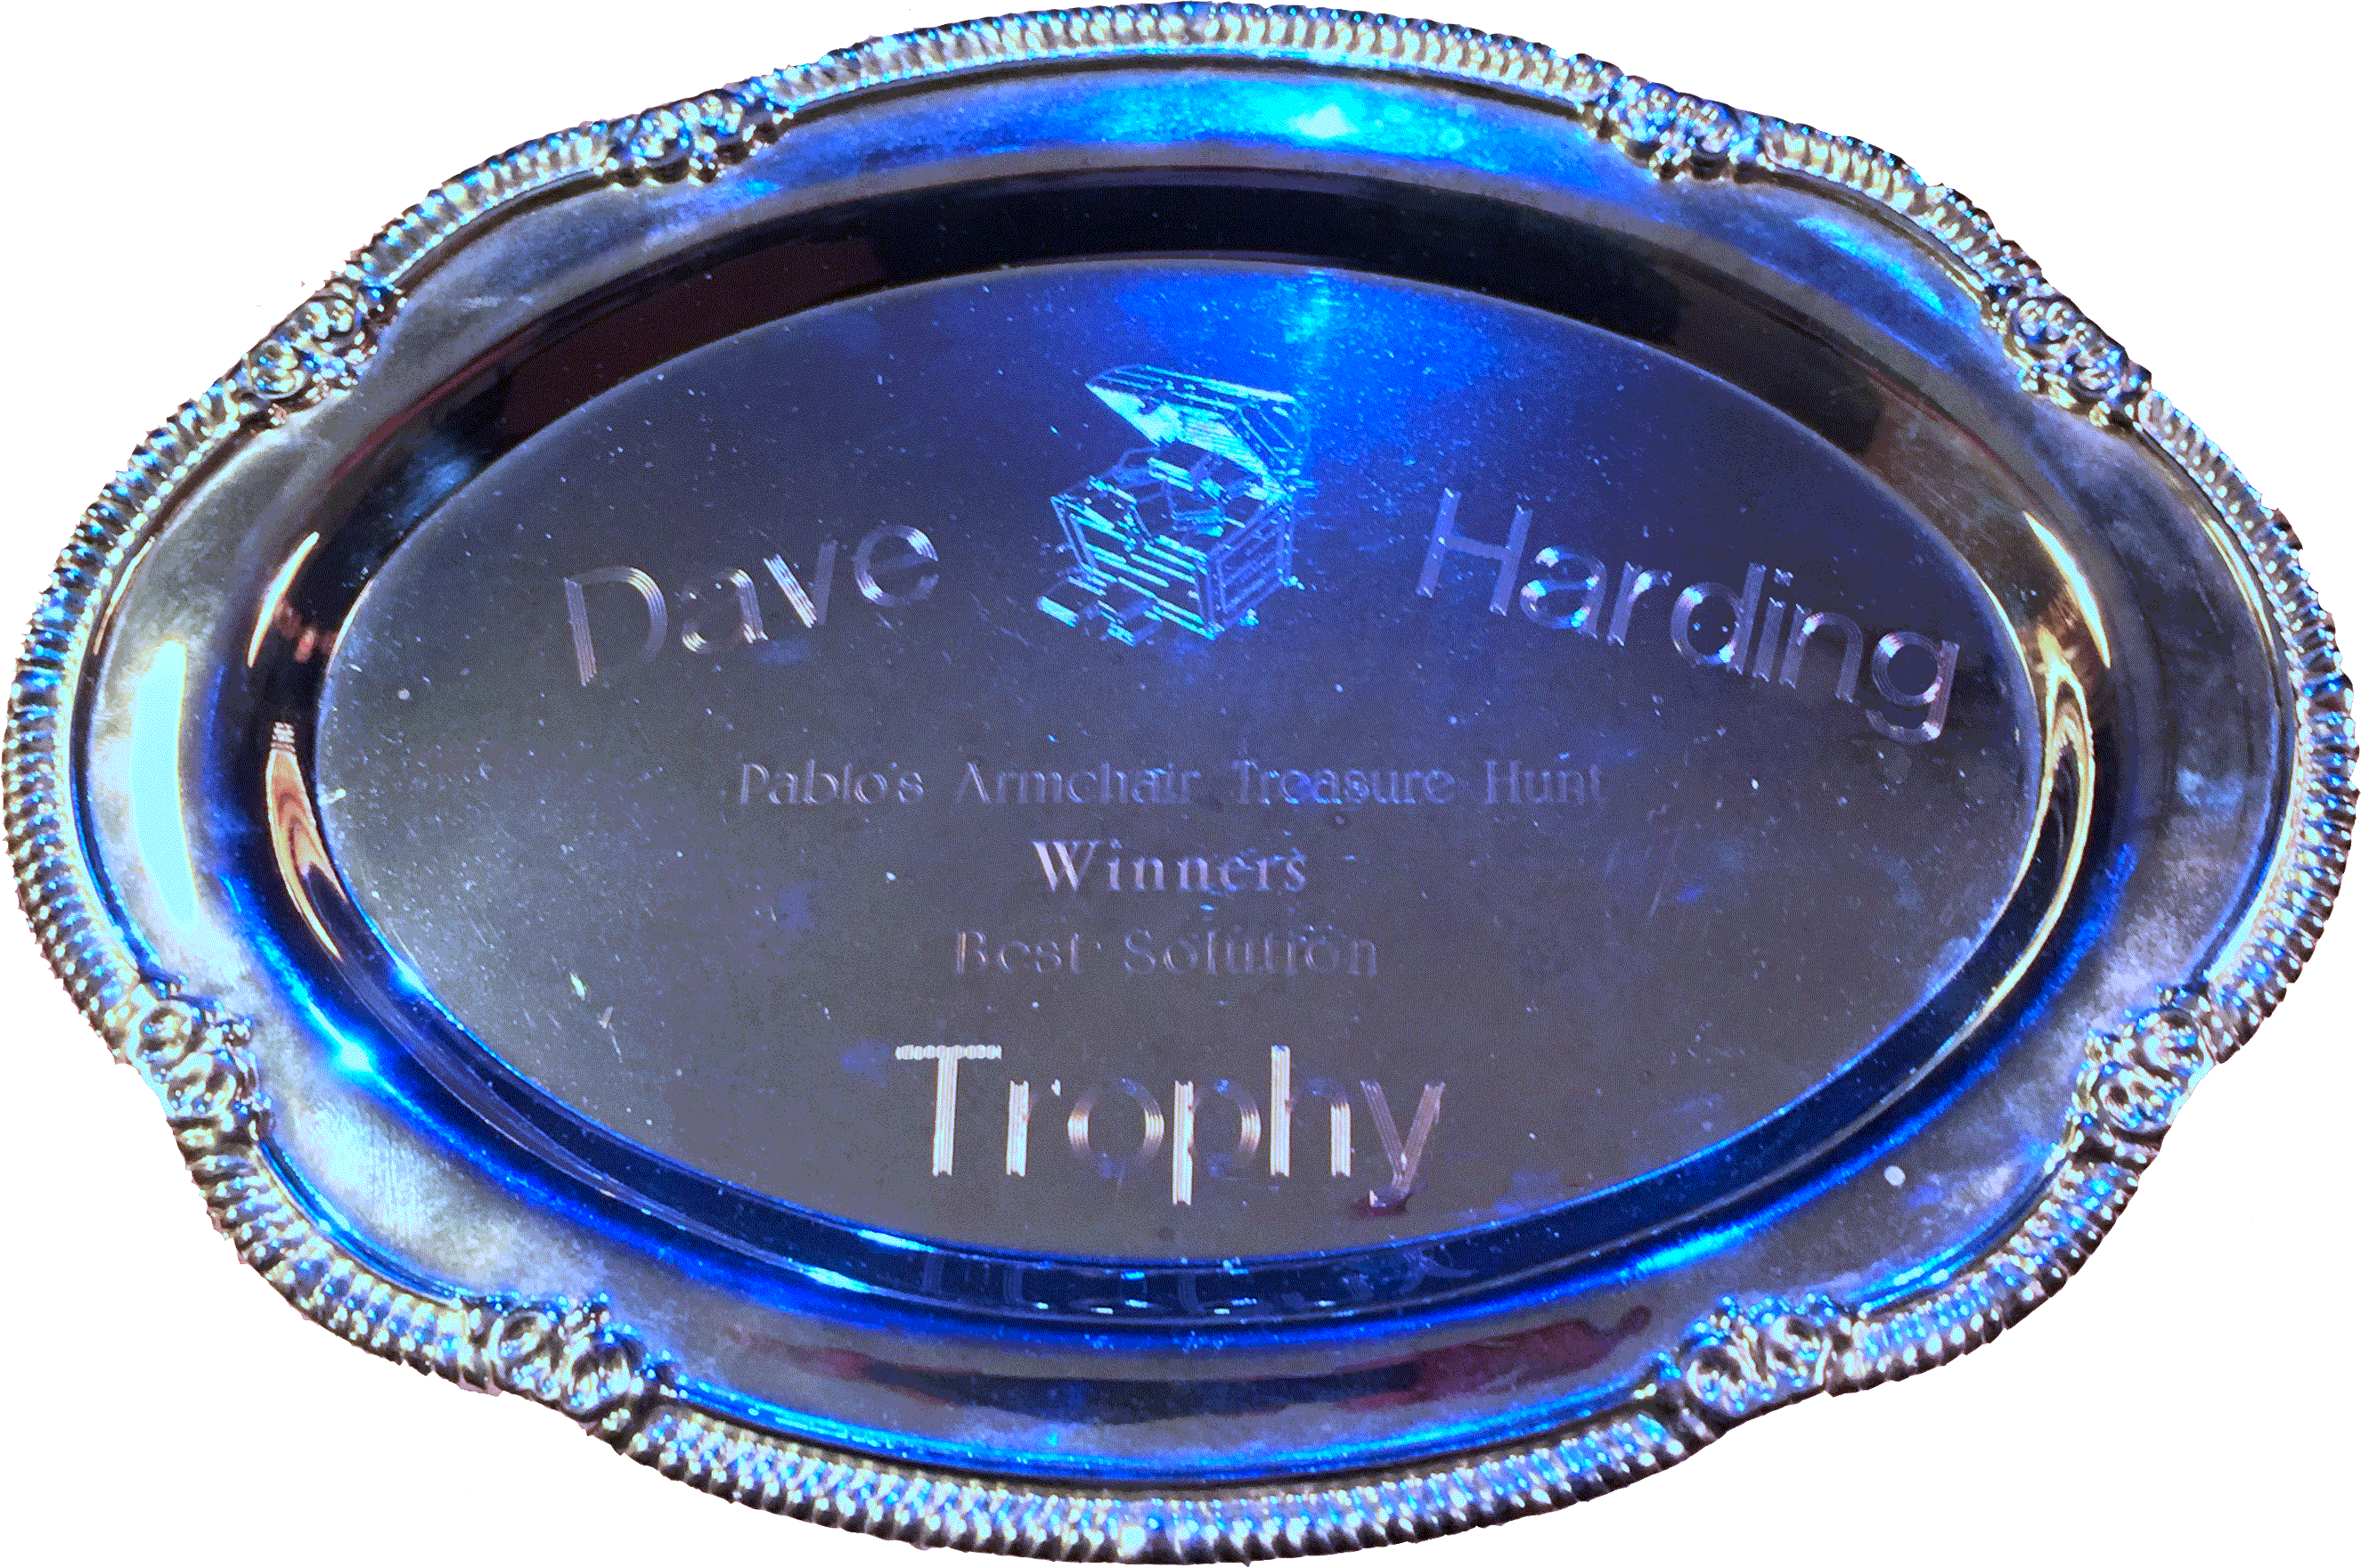 The Dave Harding Trophy